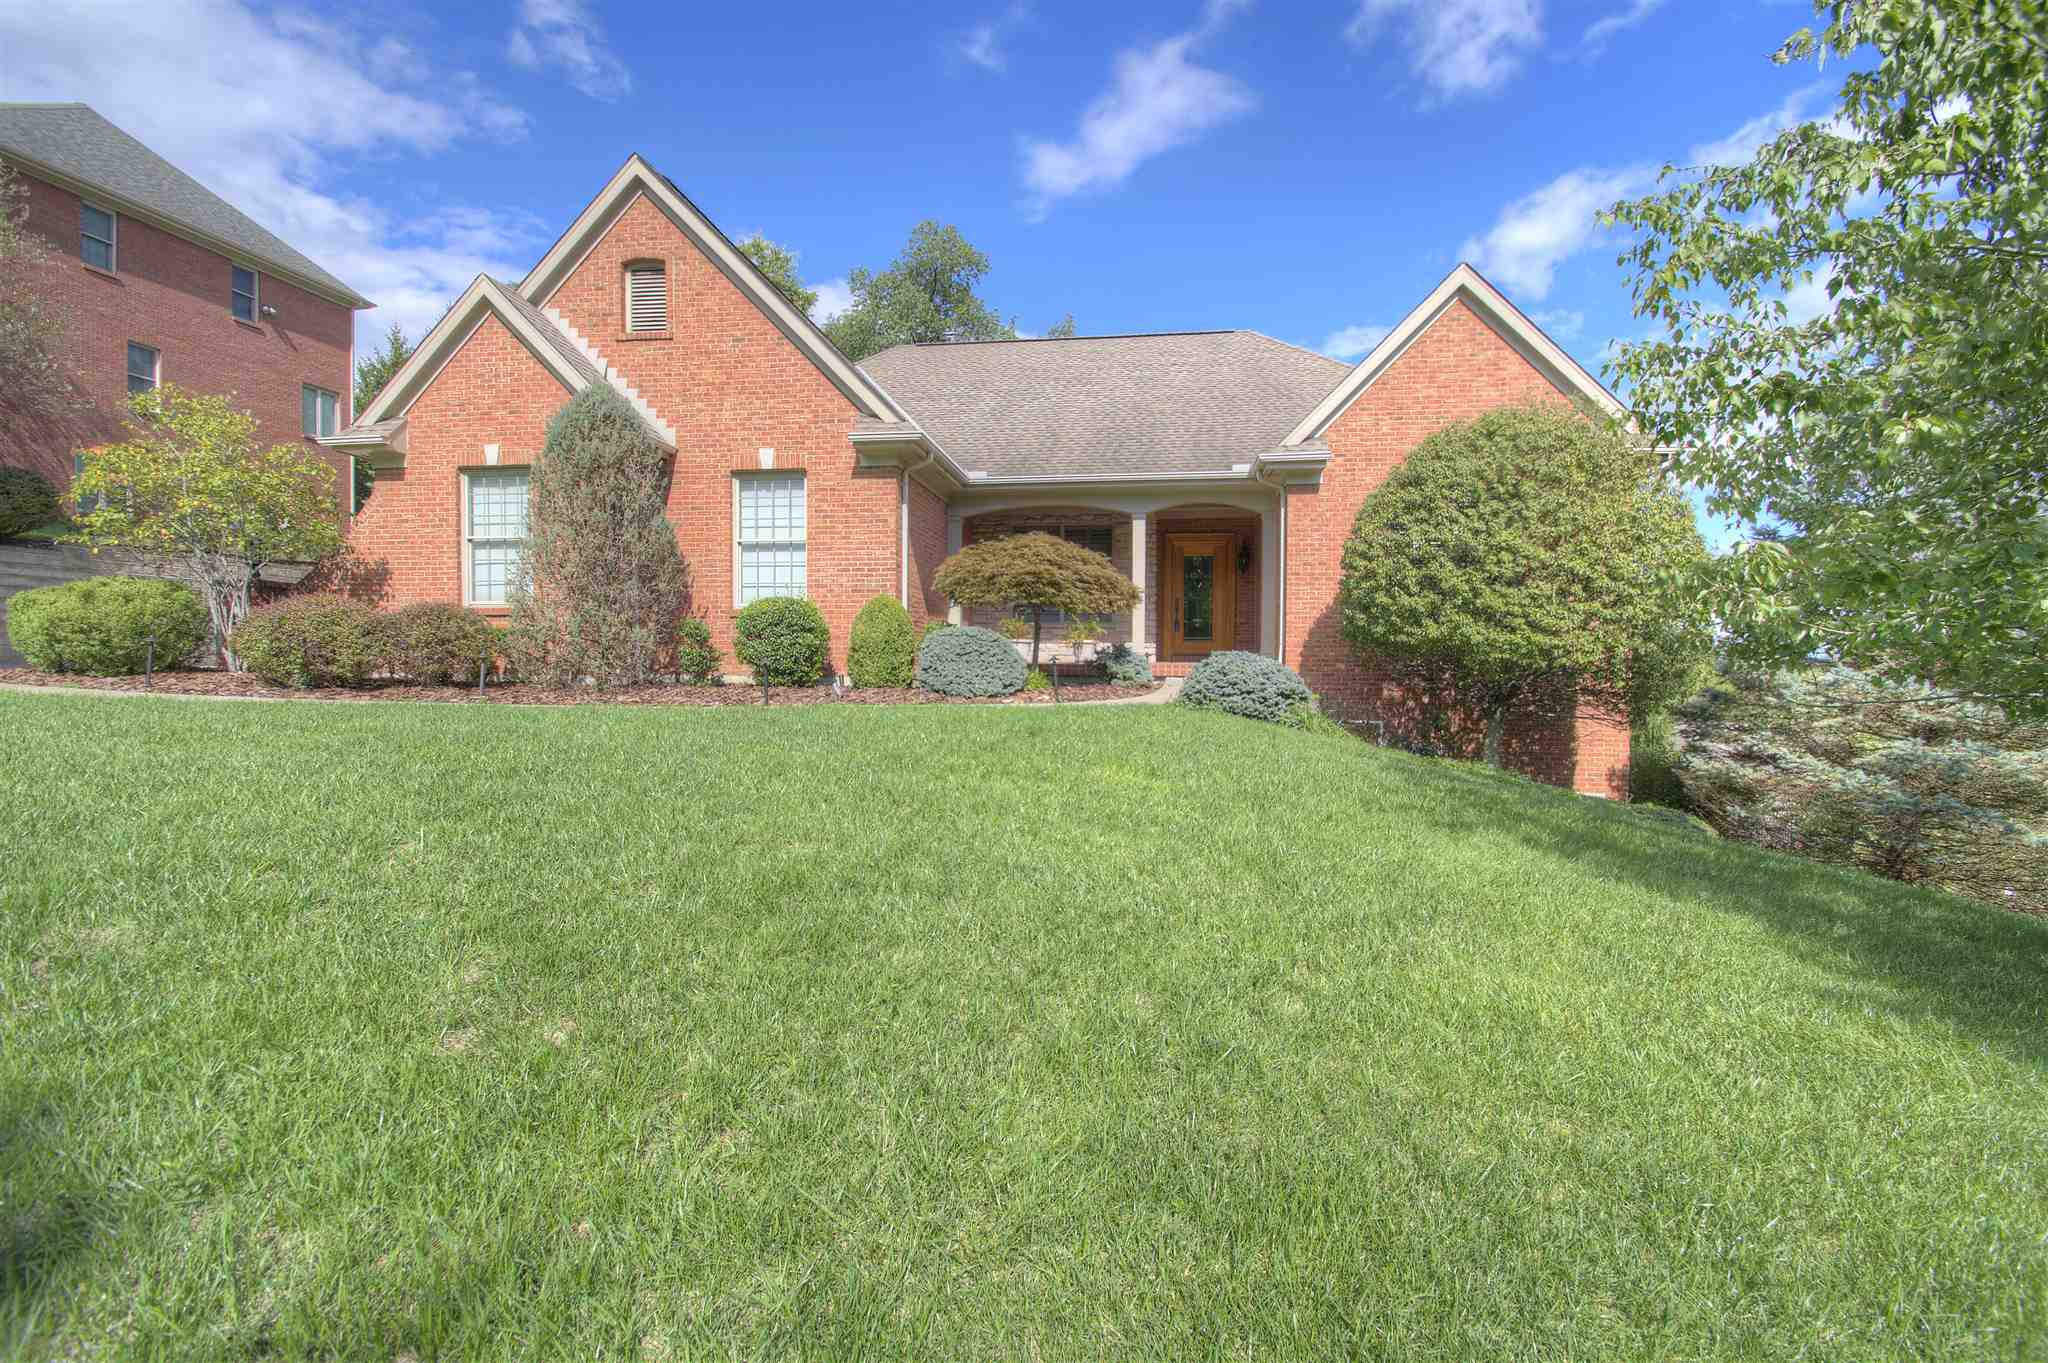 3476 Reeves Fort Wright, KY